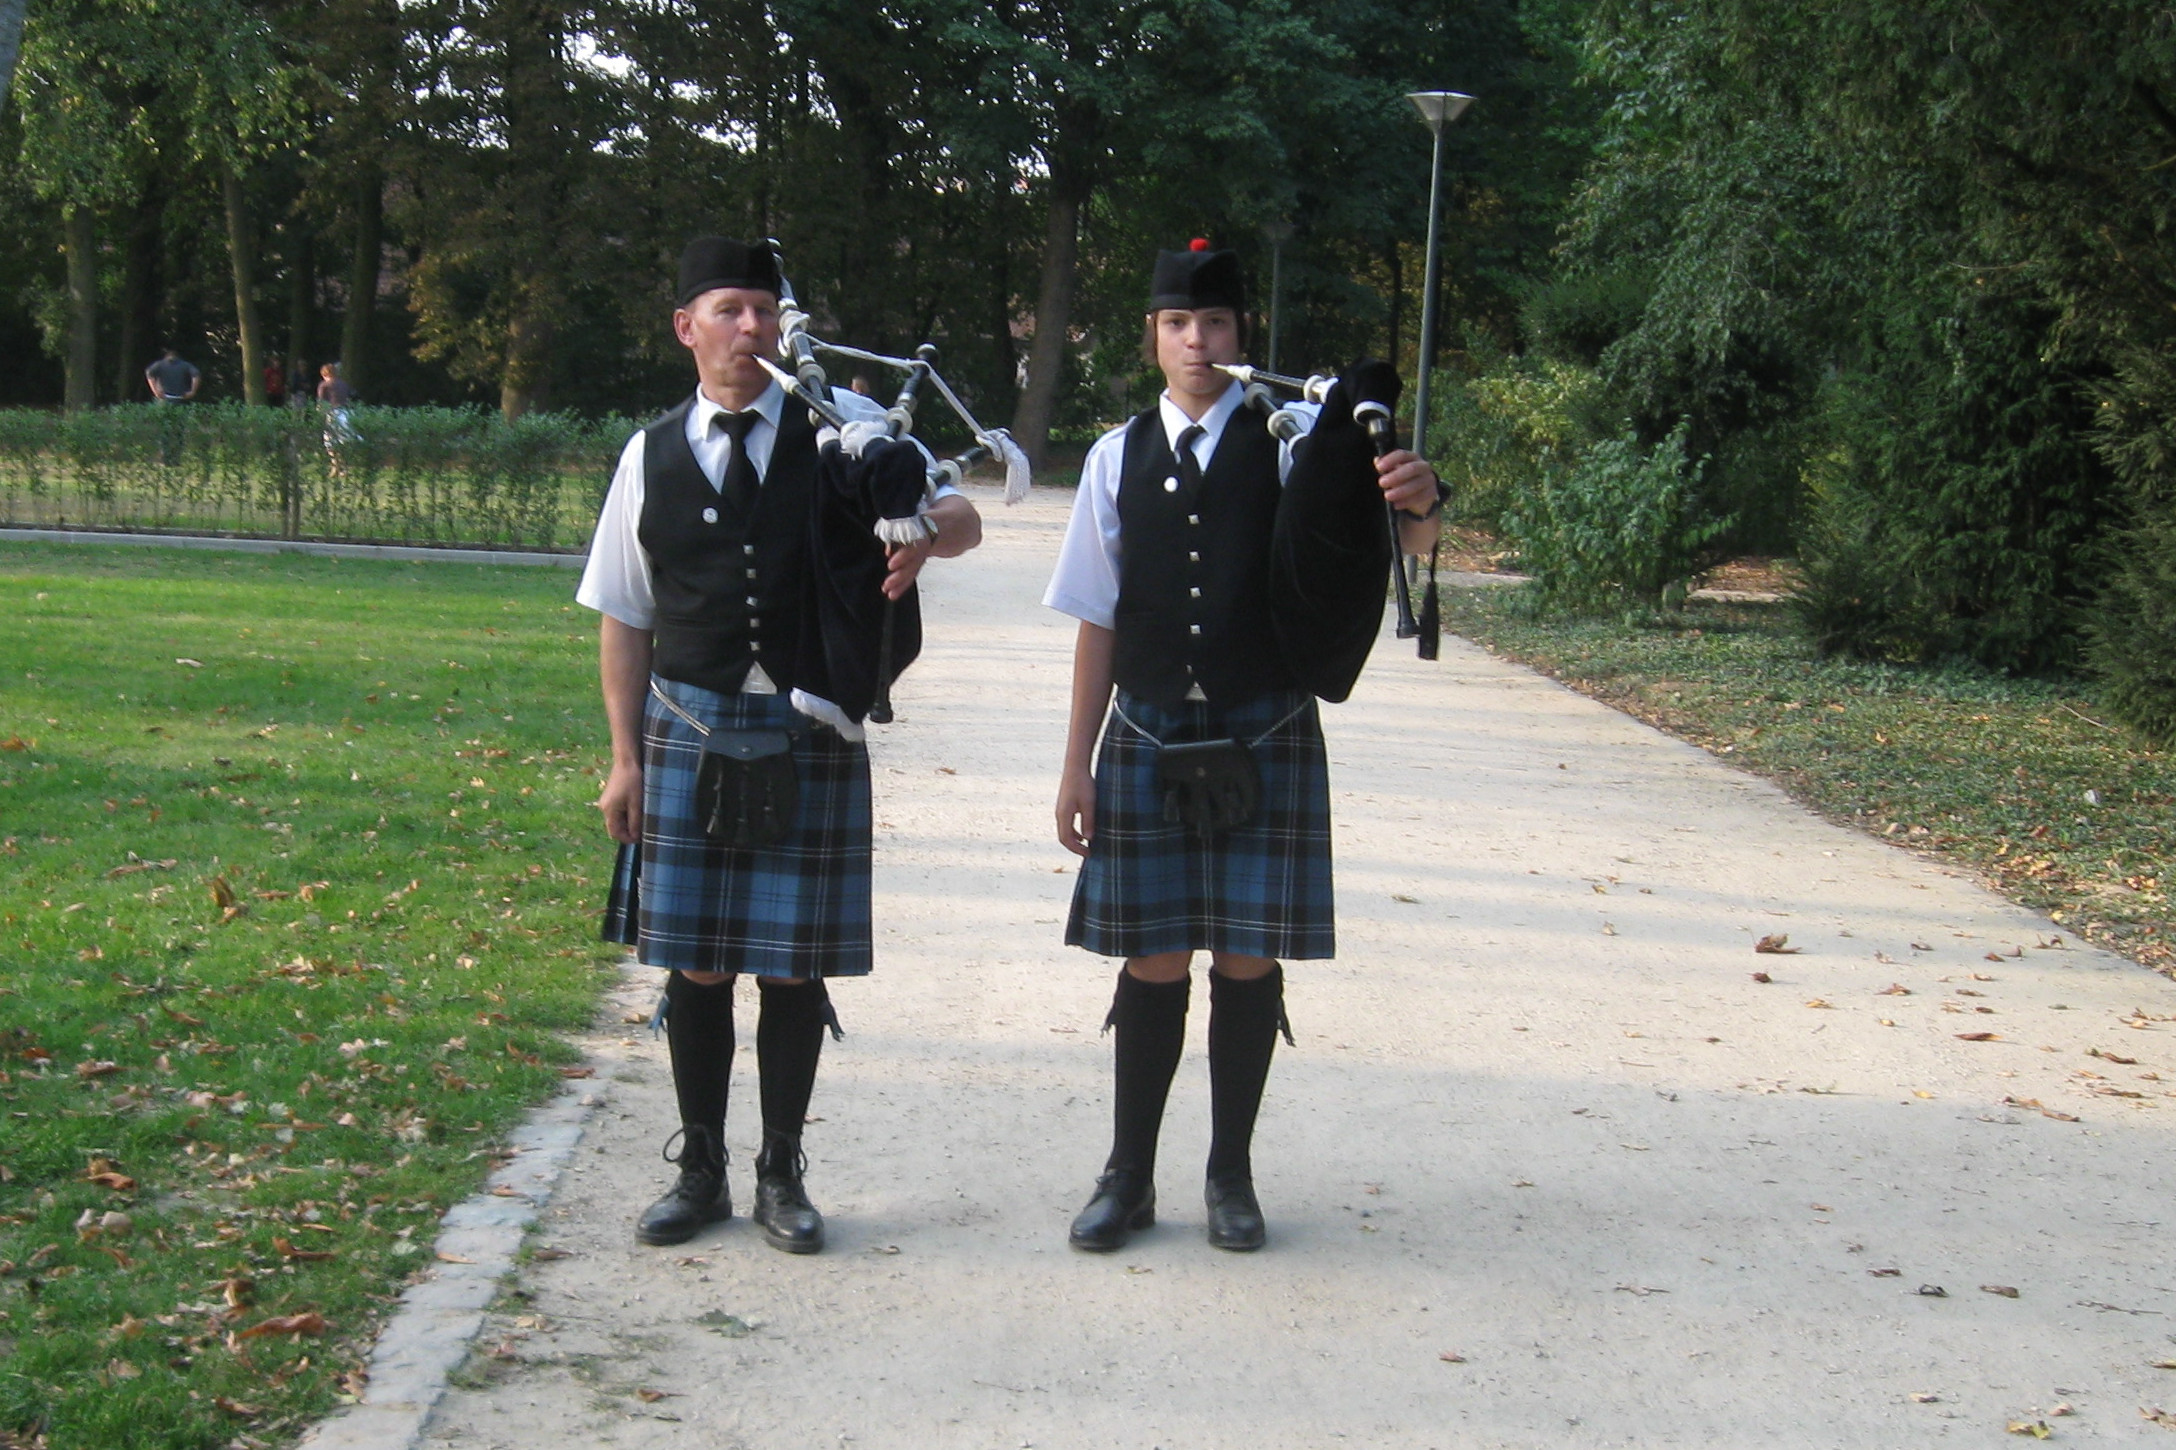 bagpipes 1012011049371050247225038